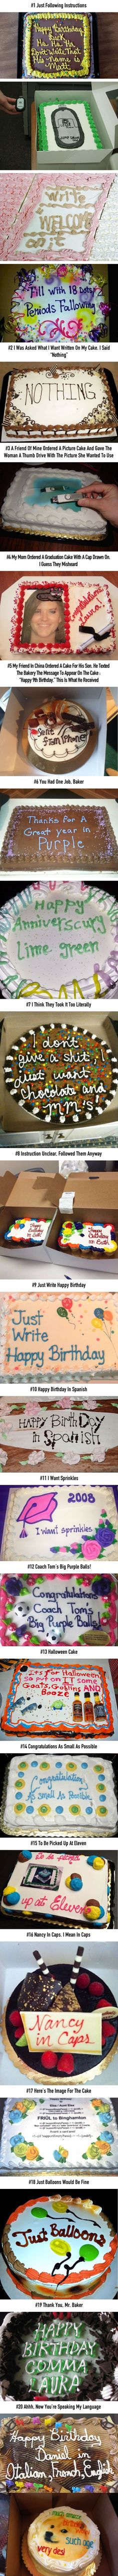 Cake decorators who took instructions too literally